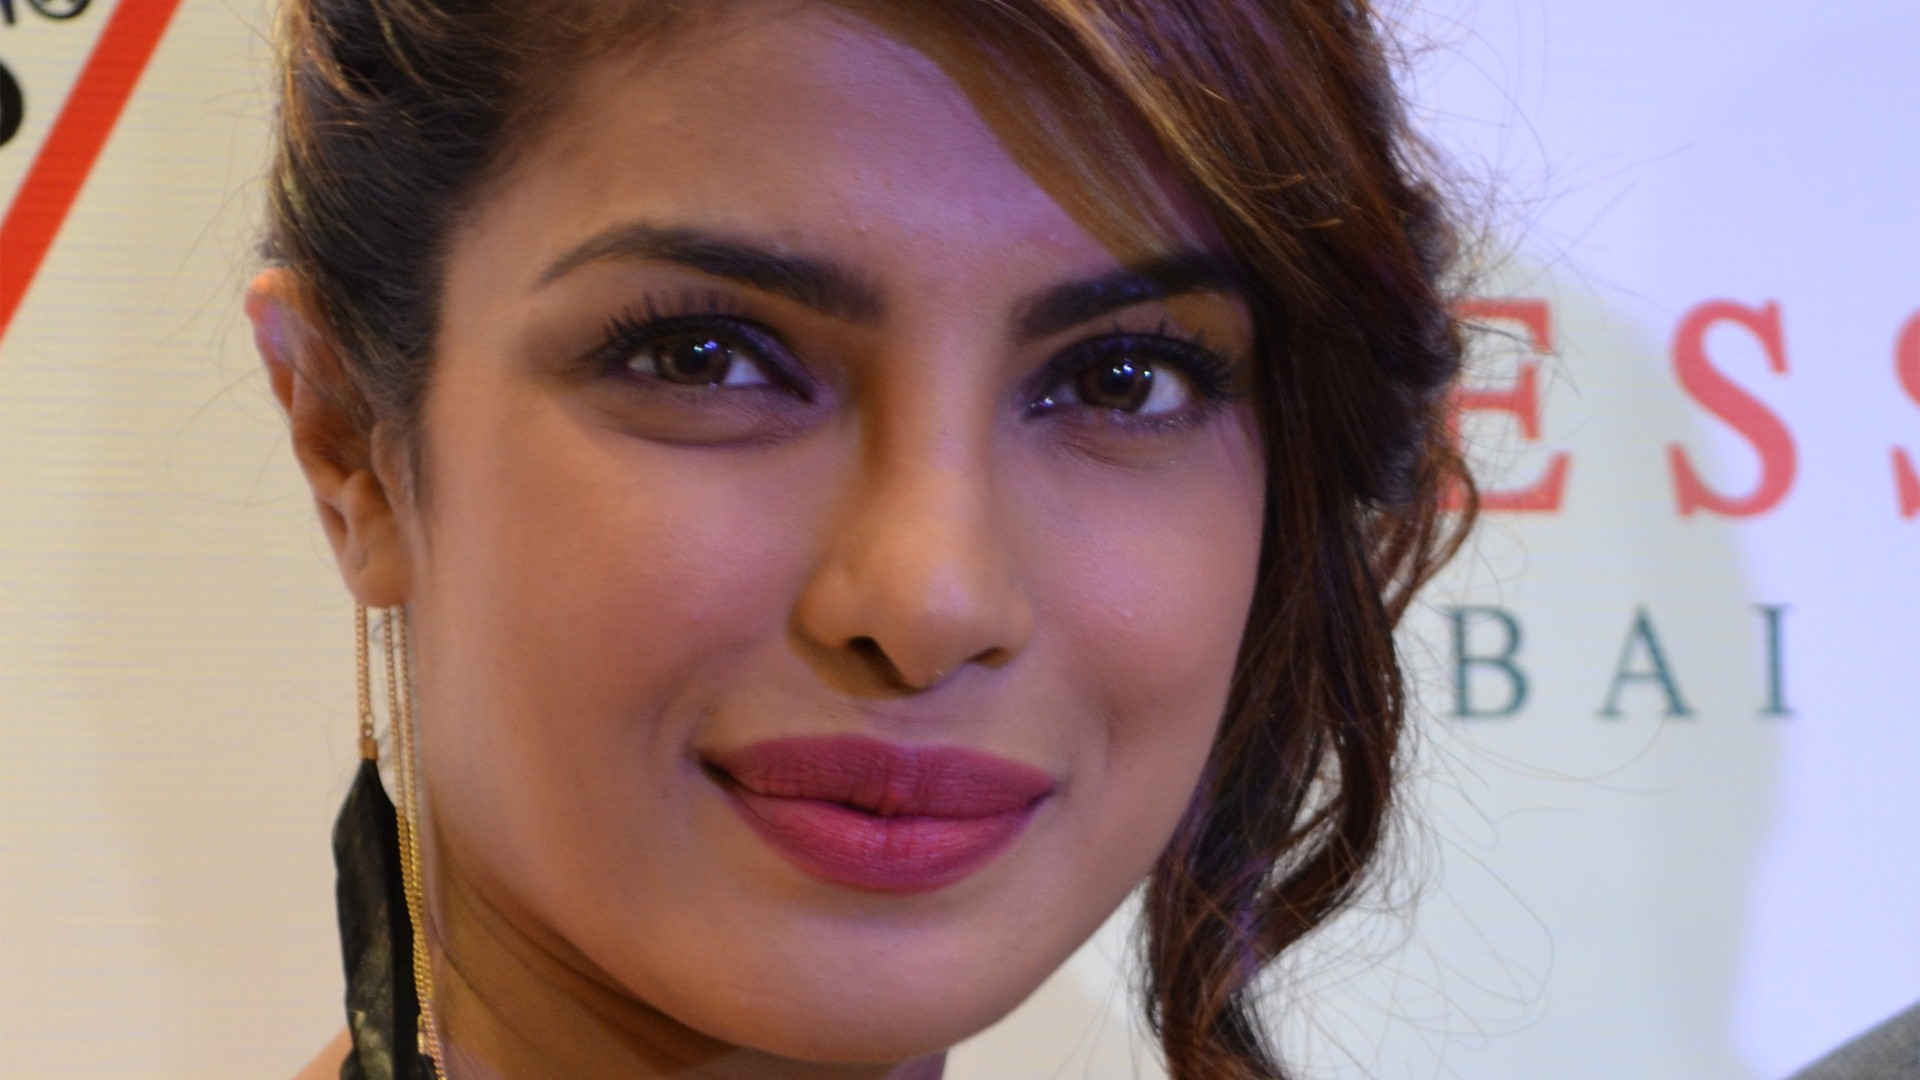 free priyanka chopra nice eye look mobile background desktop photos hd